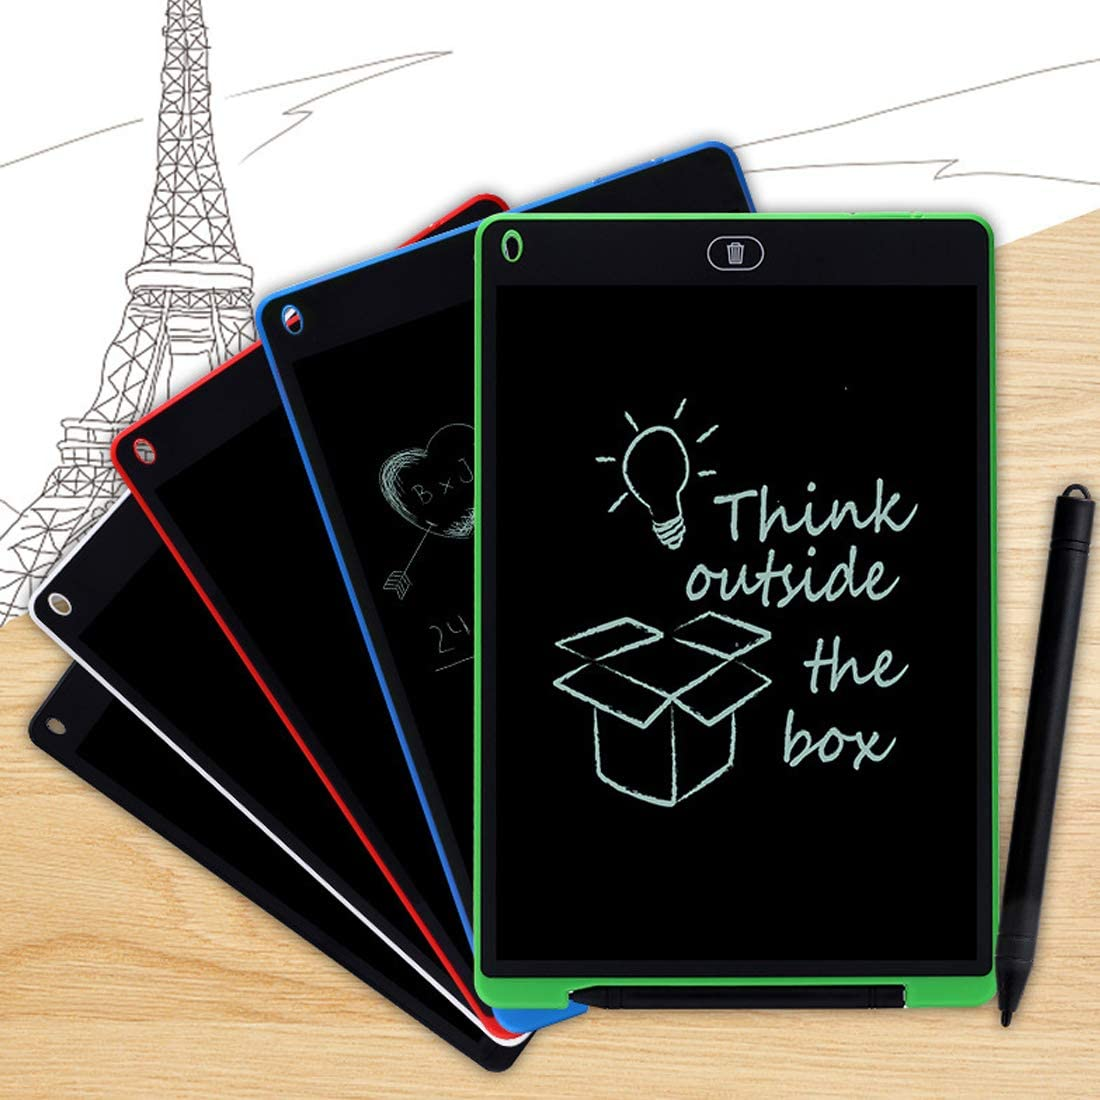 Kavas Portable 12 Inch LCD Writing Tablet Digital Drawing Tablet Handwriting Pads Electronic Tablet Board ultra-thin Board with pen